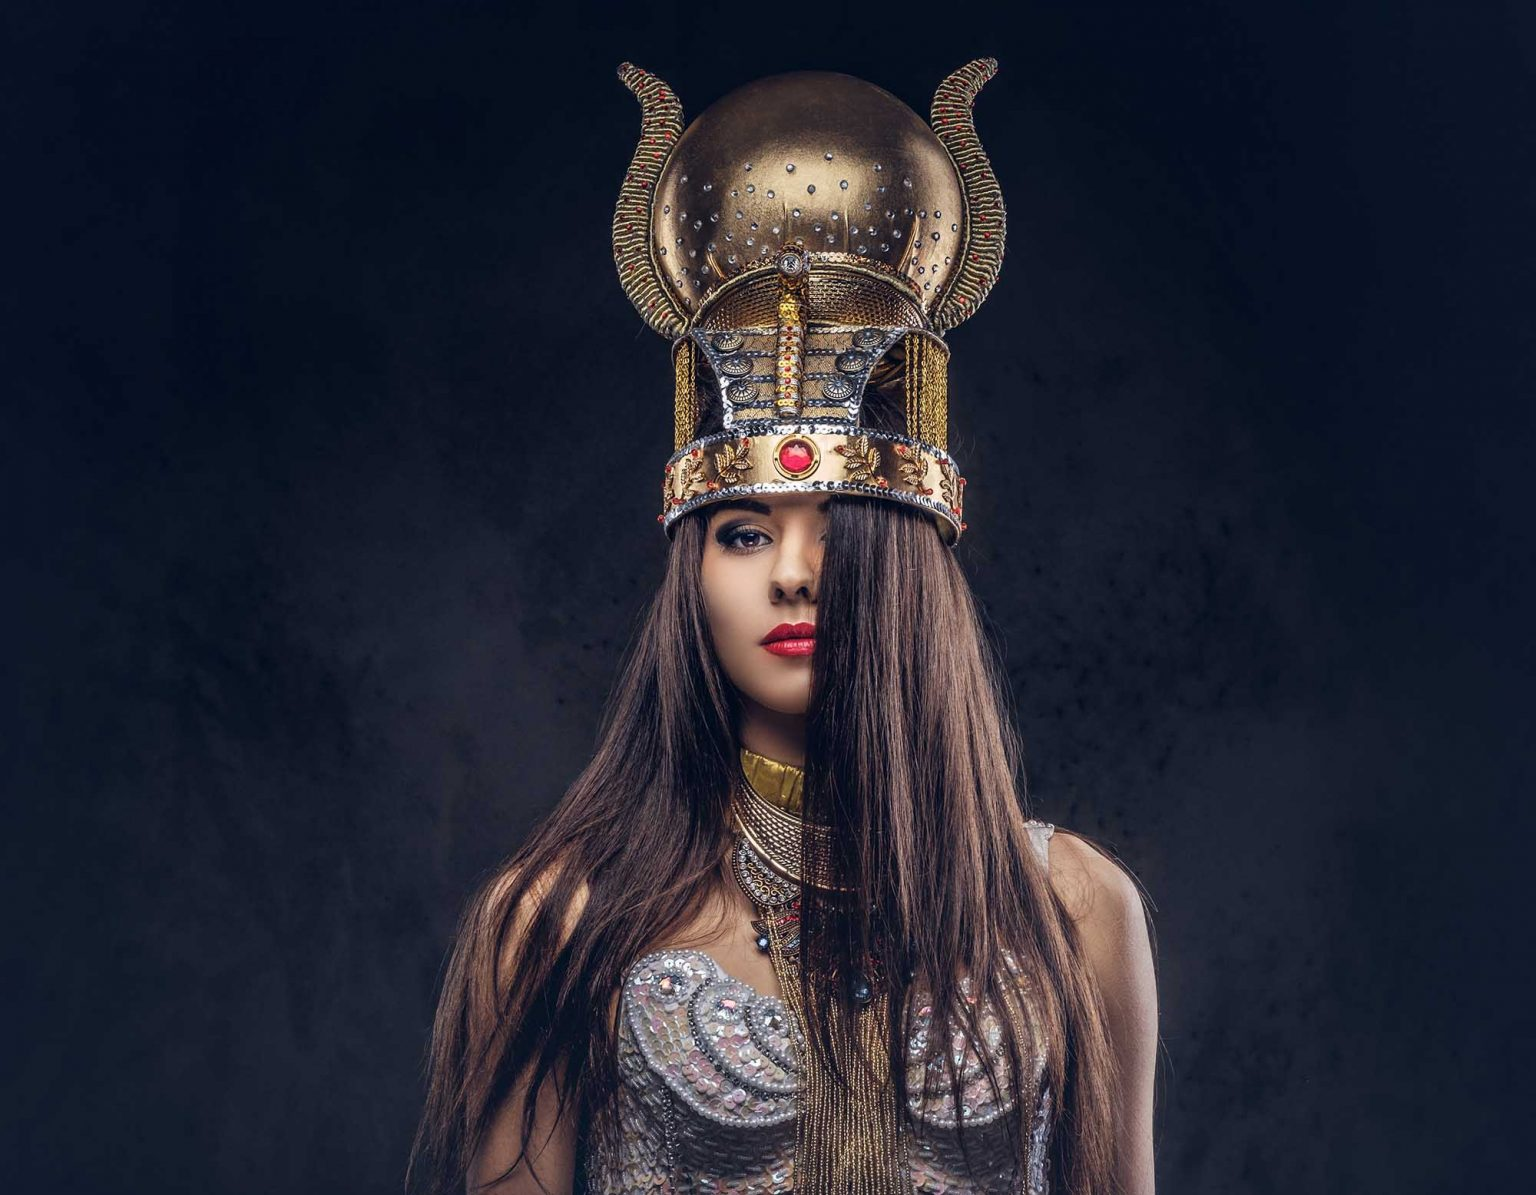 portrait of haughty egyptian queen in an ancient p S76HJ7J